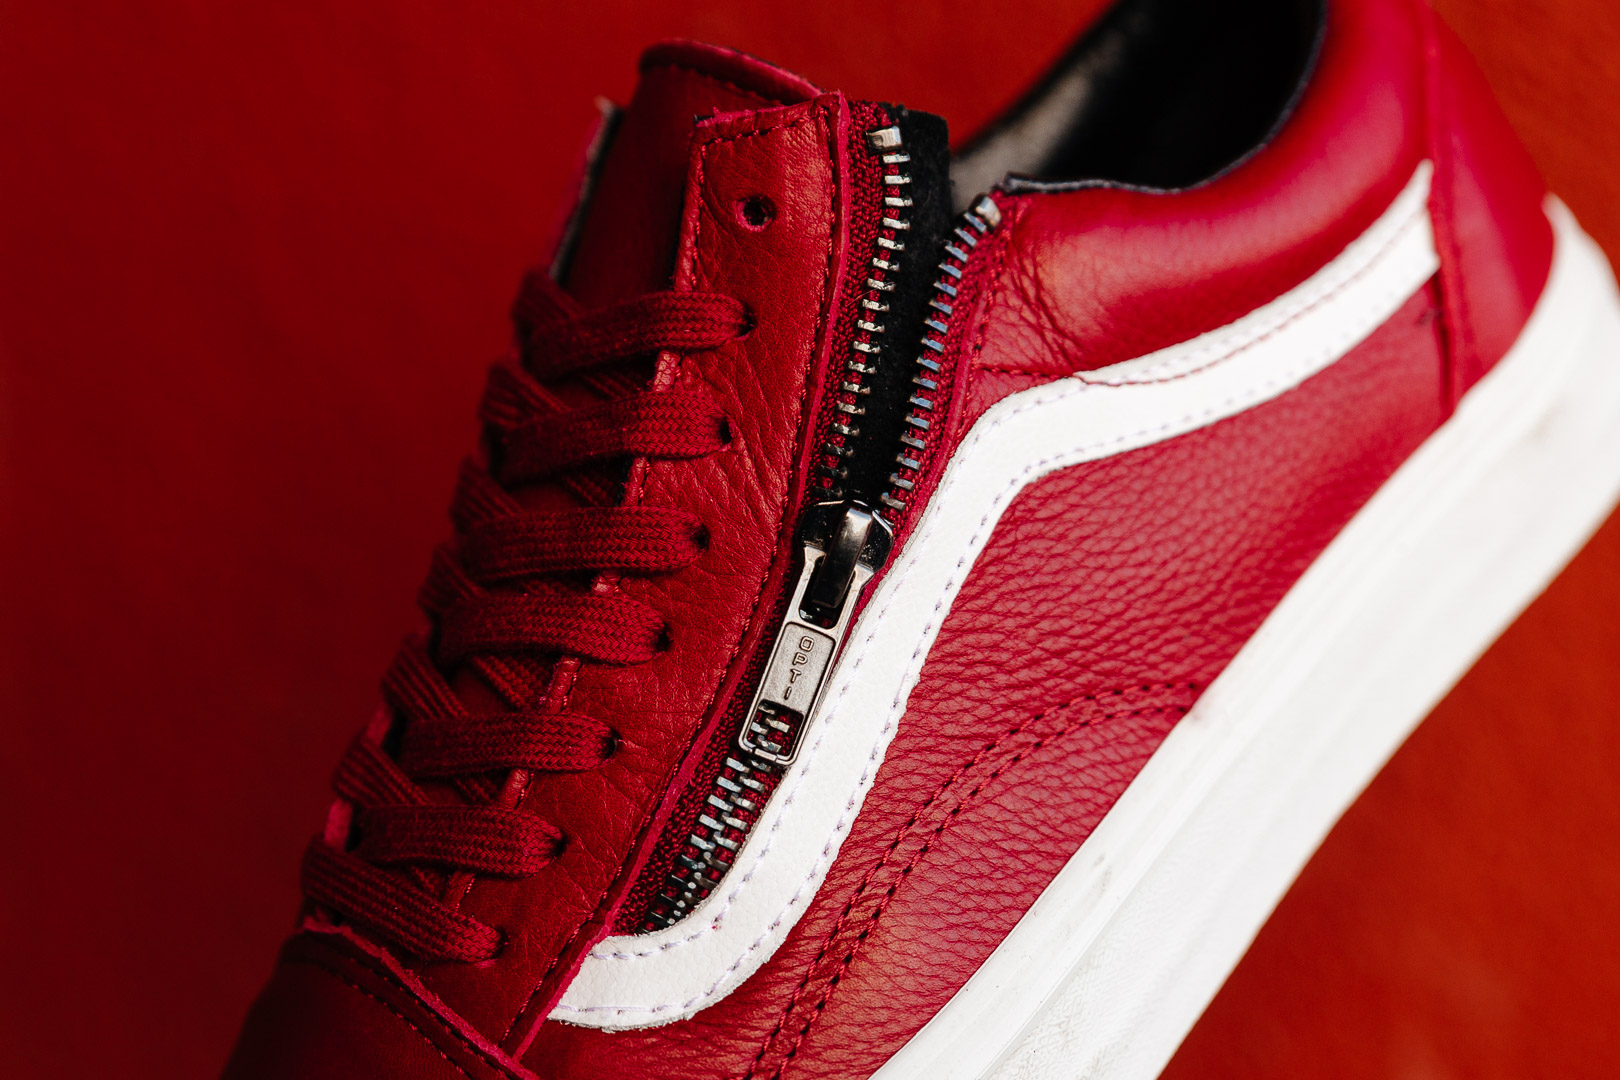 VANS-OLD-SKOOL-ZIP-PREMIUM-LEATHER-CHILI-PEPPER-RED-WHITE-V0018GJTH-2589-INS-SoleHeaven-.jpg